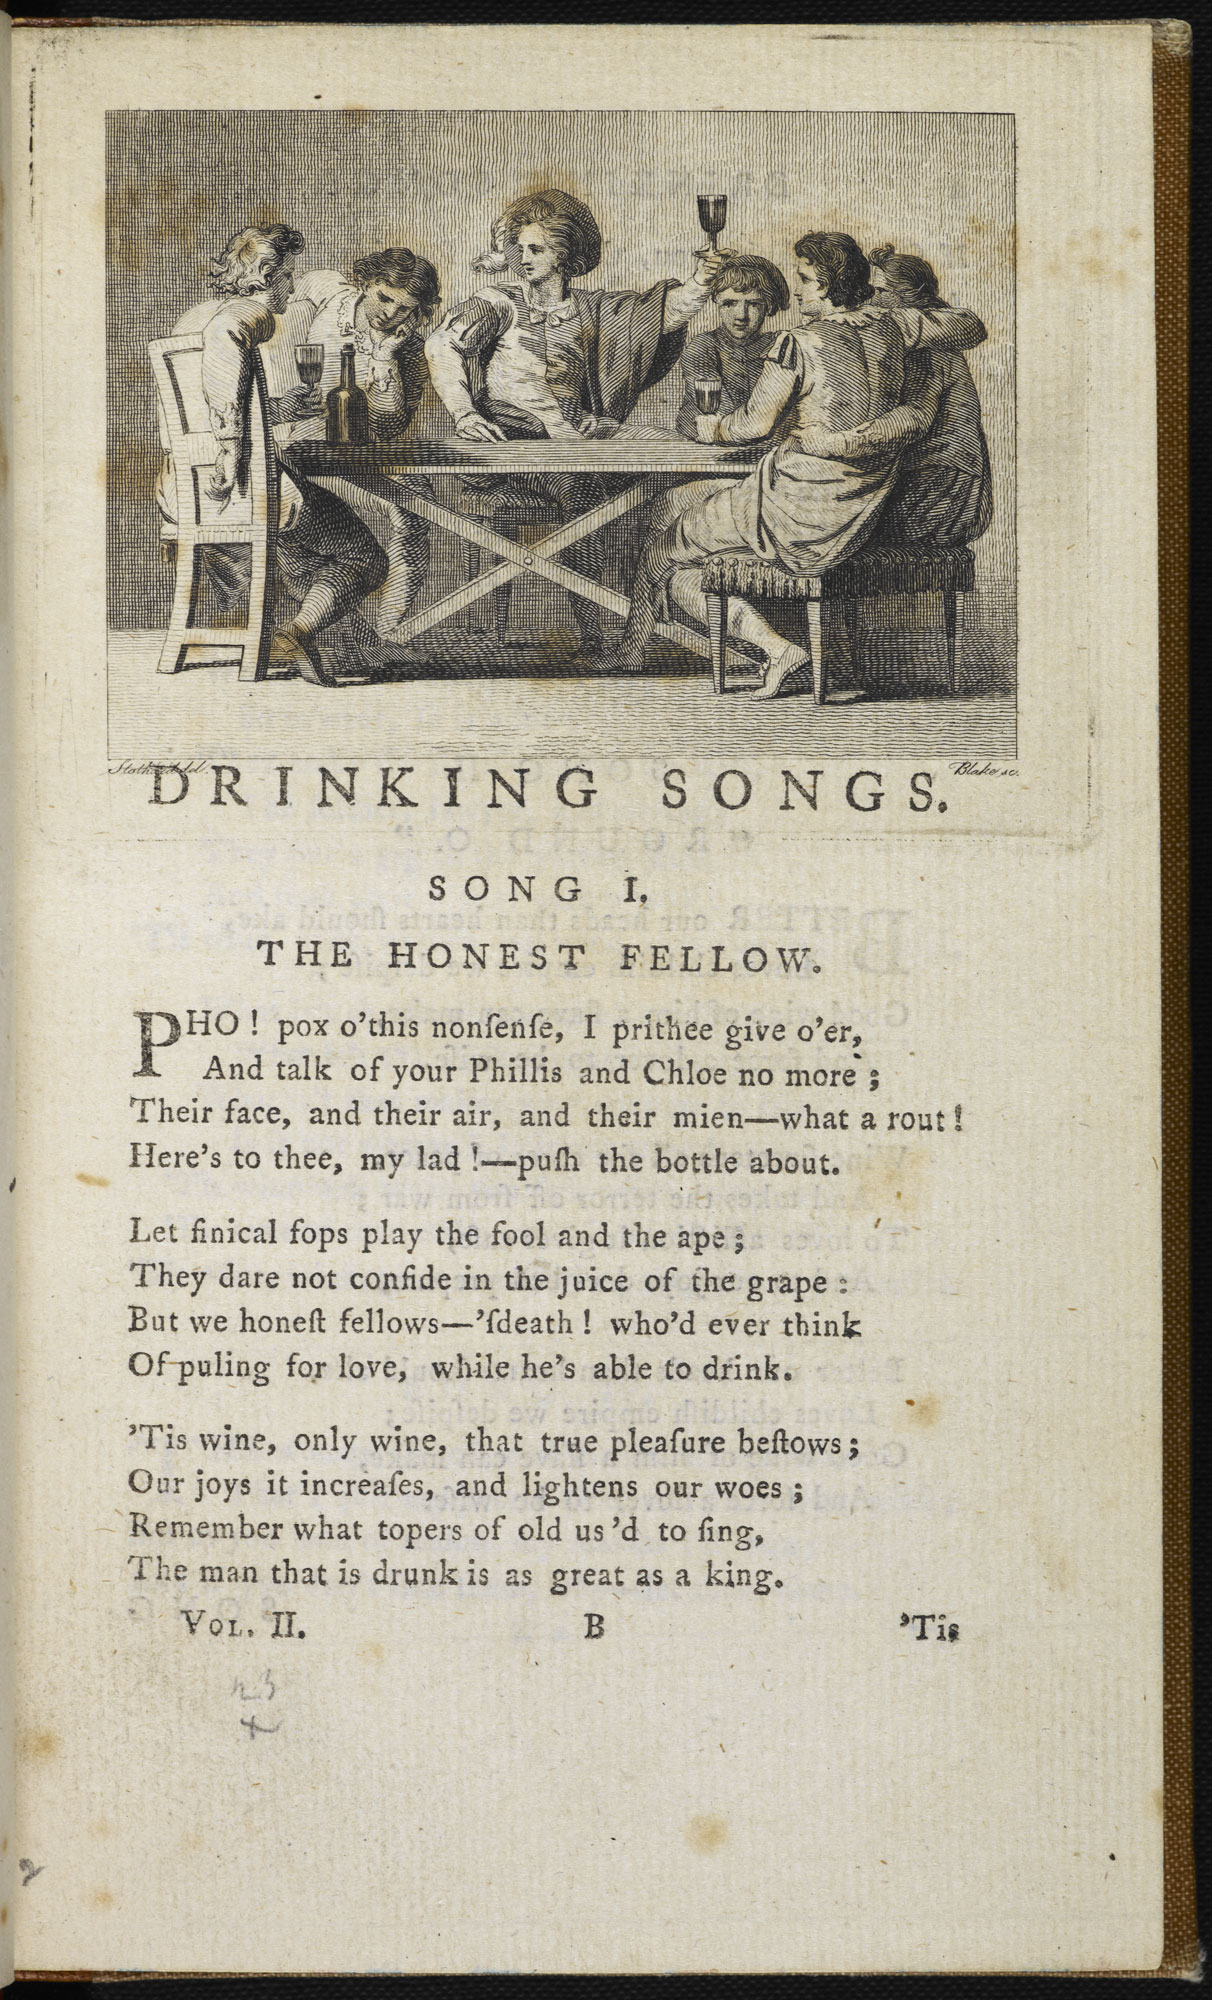 Select Collection of English Songs by Joseph Ritson [page: vol. II p. 1]